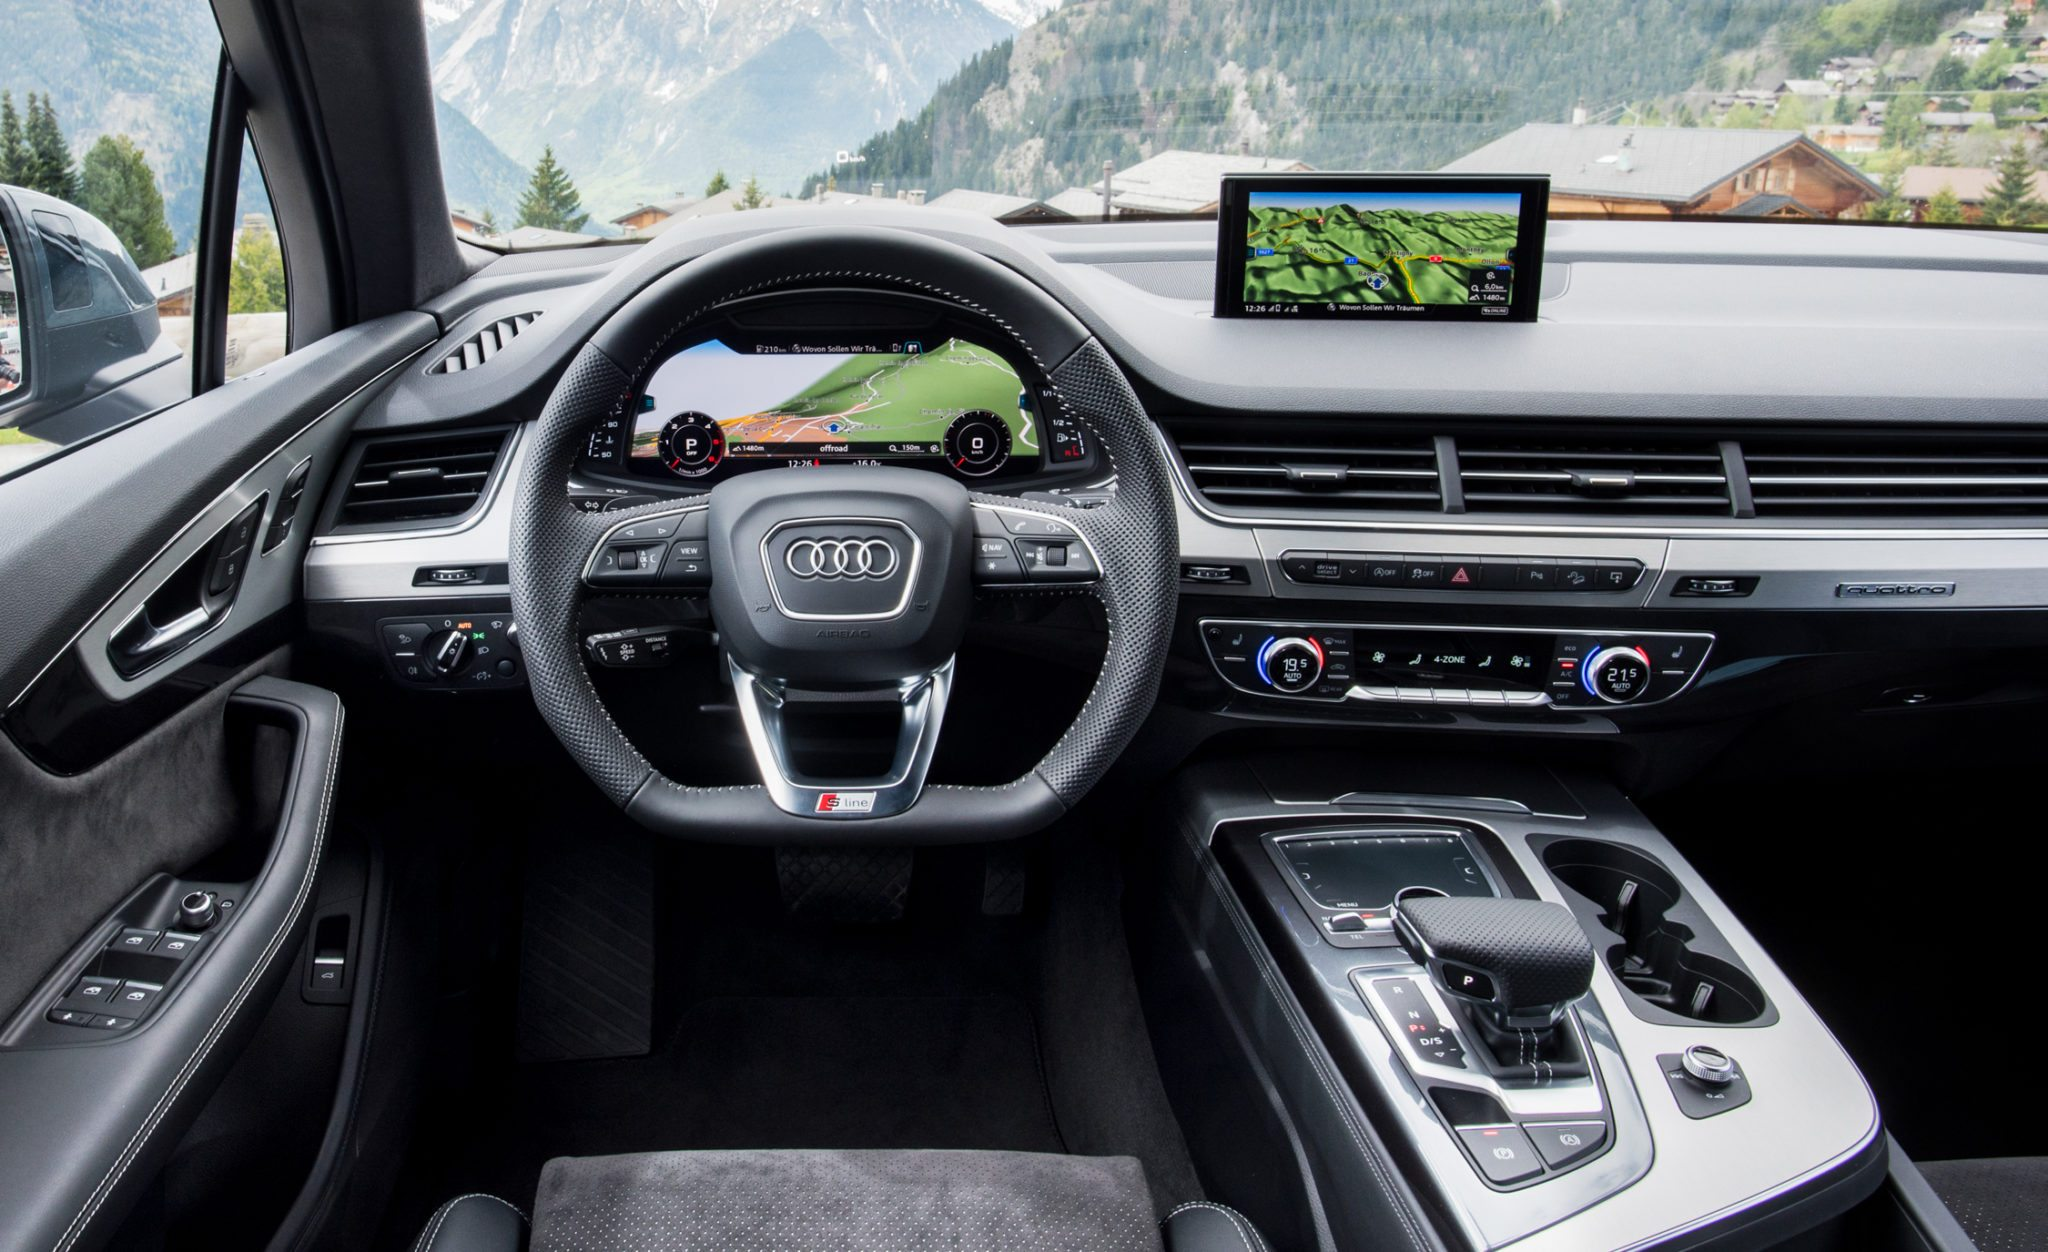 2017 Audi Q7 Pricing And Features Detailed 1